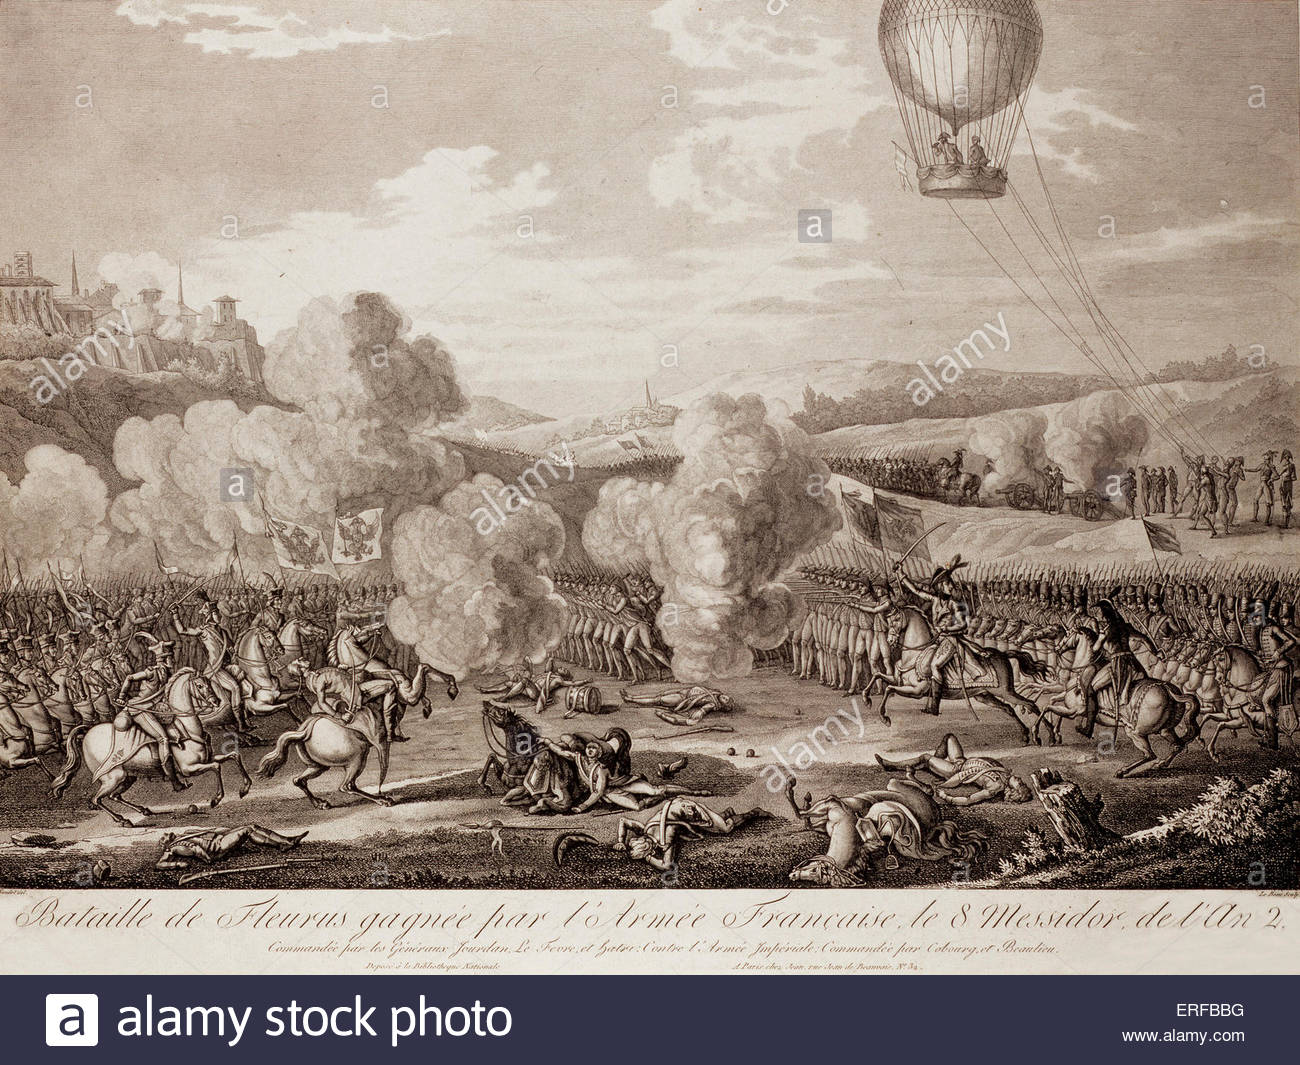 Battle of Fleurus, 26 June 1794. French defeat of the Austrians, Dutch, and their allies. The hot air balloon 'La - Stock Image